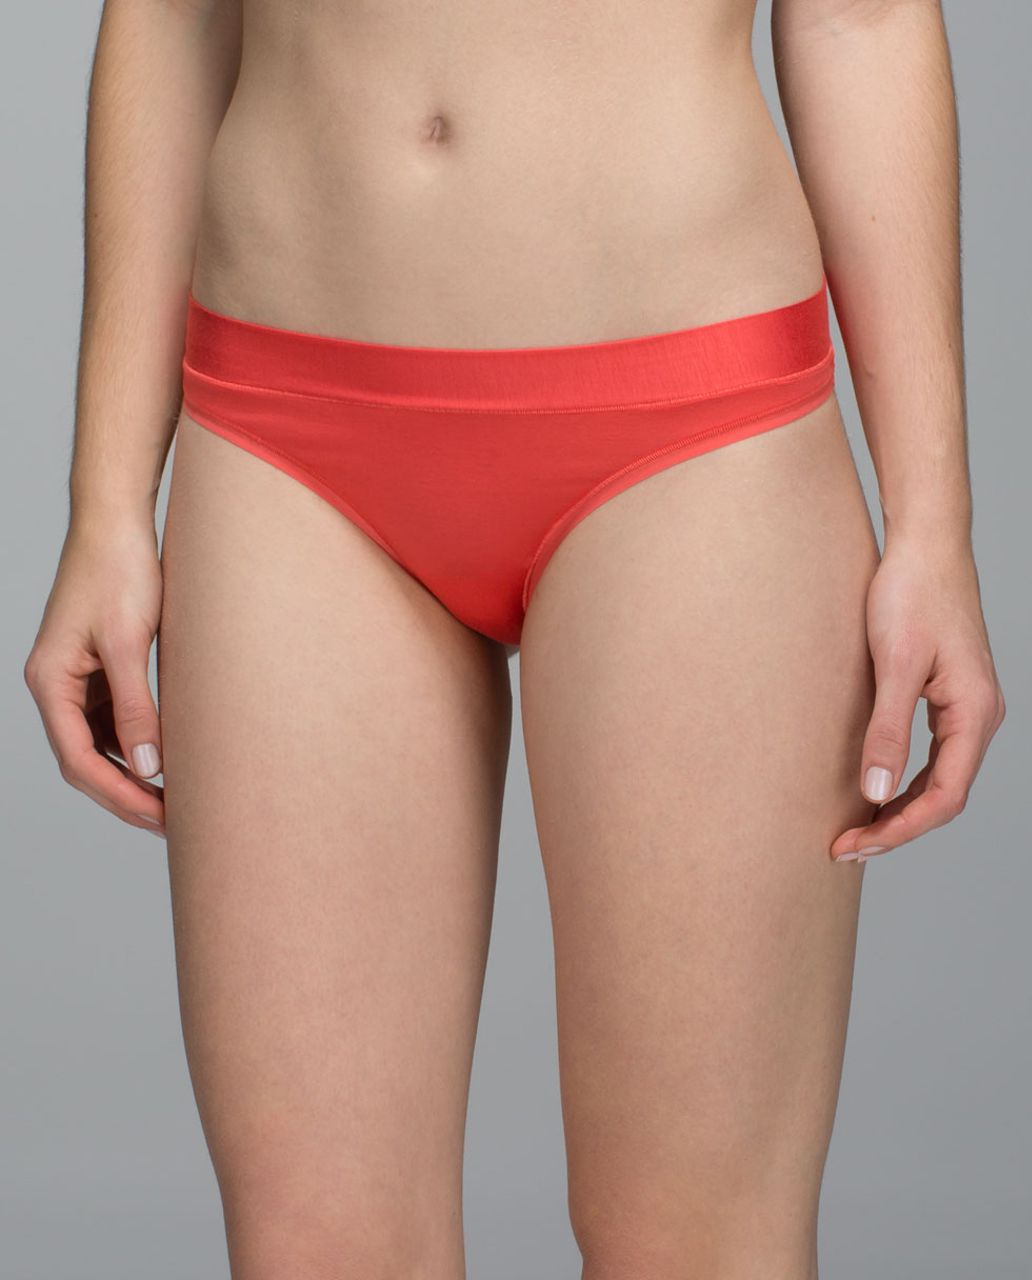 Lululemon Mula Bandhawear Thong - Atomic Red